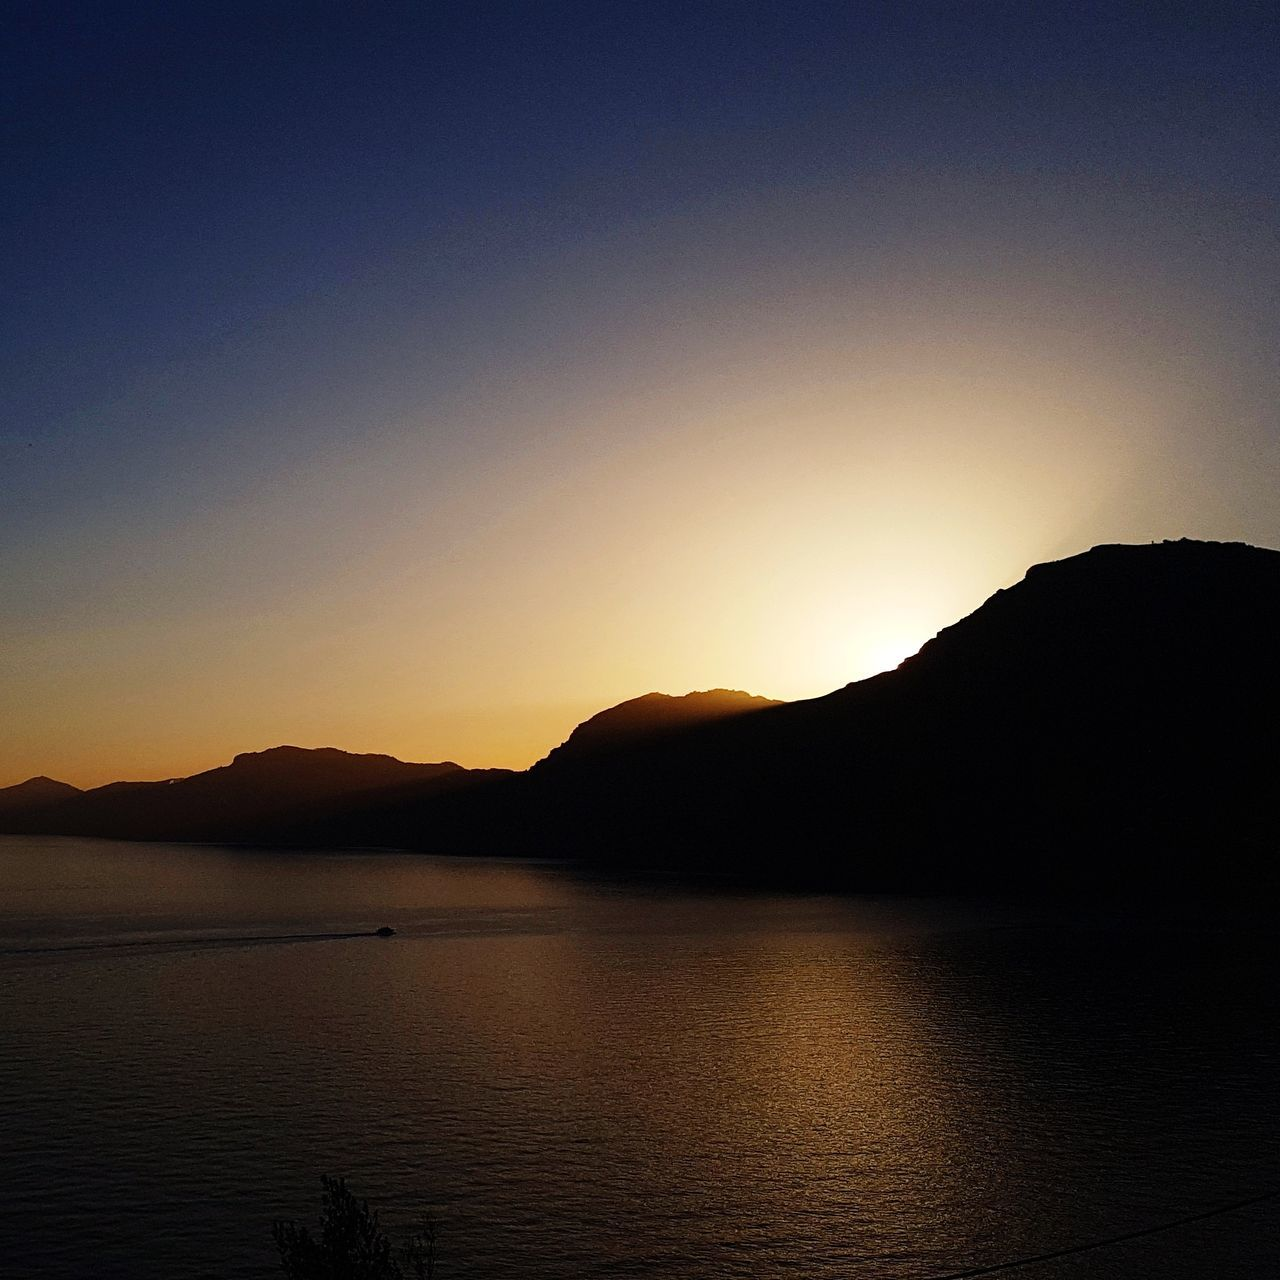 Mountain Sunset No People Beauty In Nature Silhouette Nature Landscape Tranquility Scenics Outdoors Clear Sky Sky Night Positano, Italy Positano